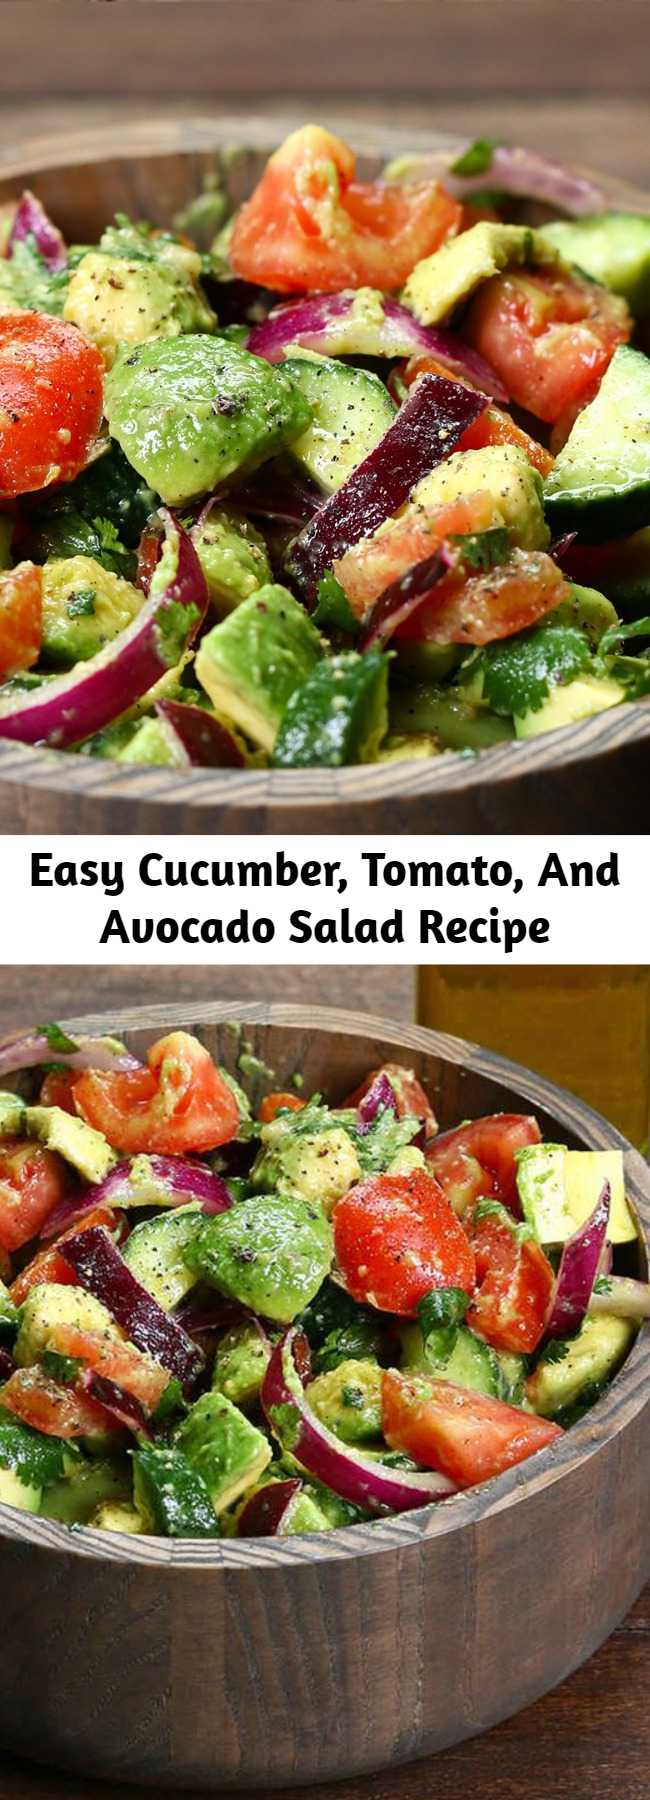 Easy Cucumber, Tomato, And Avocado Salad Recipe - Our family's favorite classic cucumber and tomato salad just got better with the addition of avocado, a light and flavorful lemon dressing and the freshness of cilantro. Easy, excellent avocado salad.